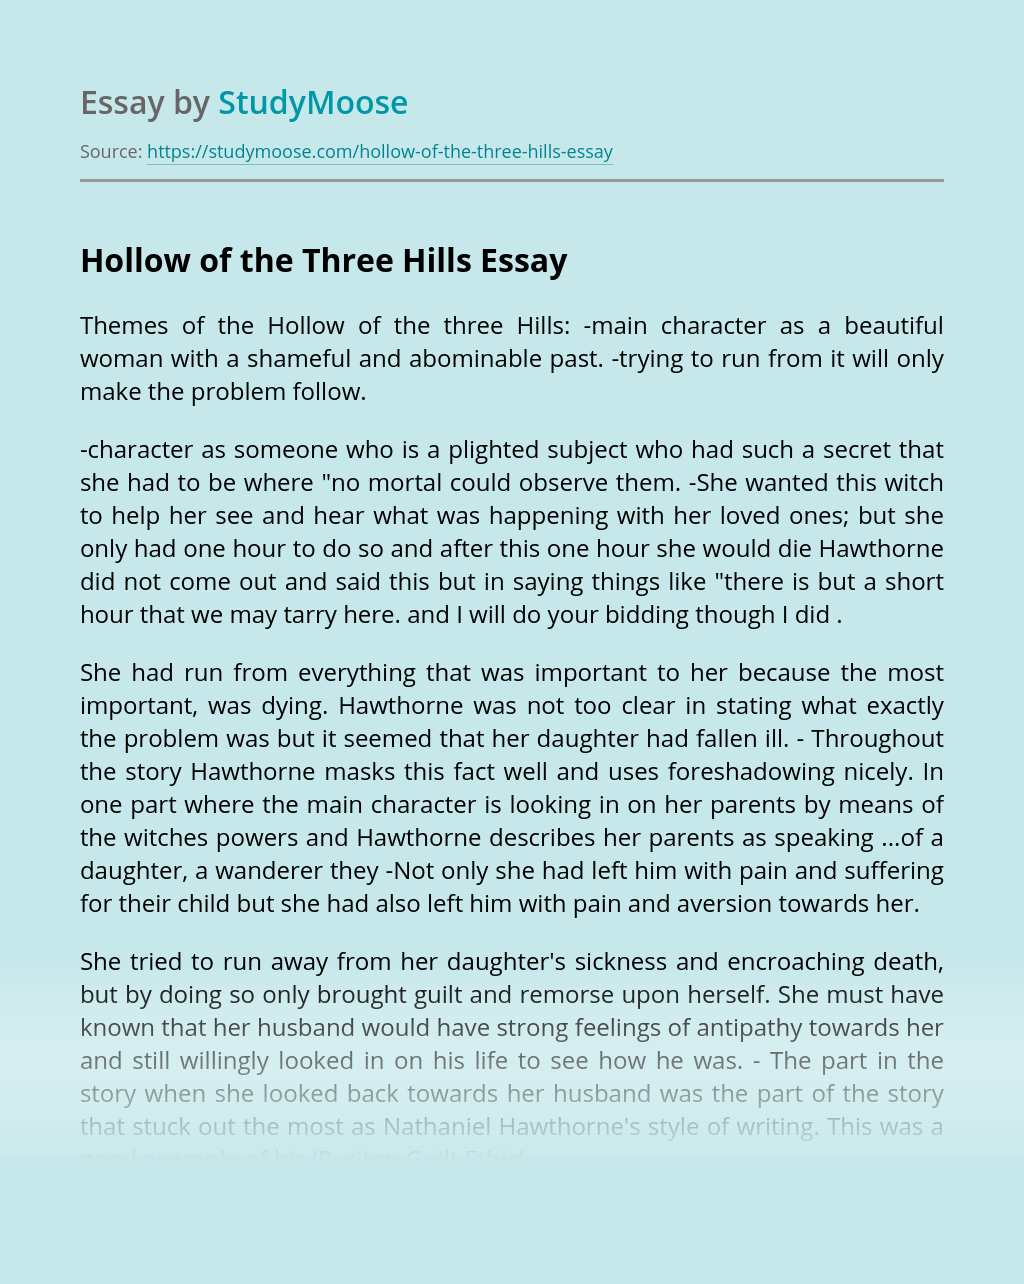 Hollow of the Three Hills by Nathaniel Hawthorne